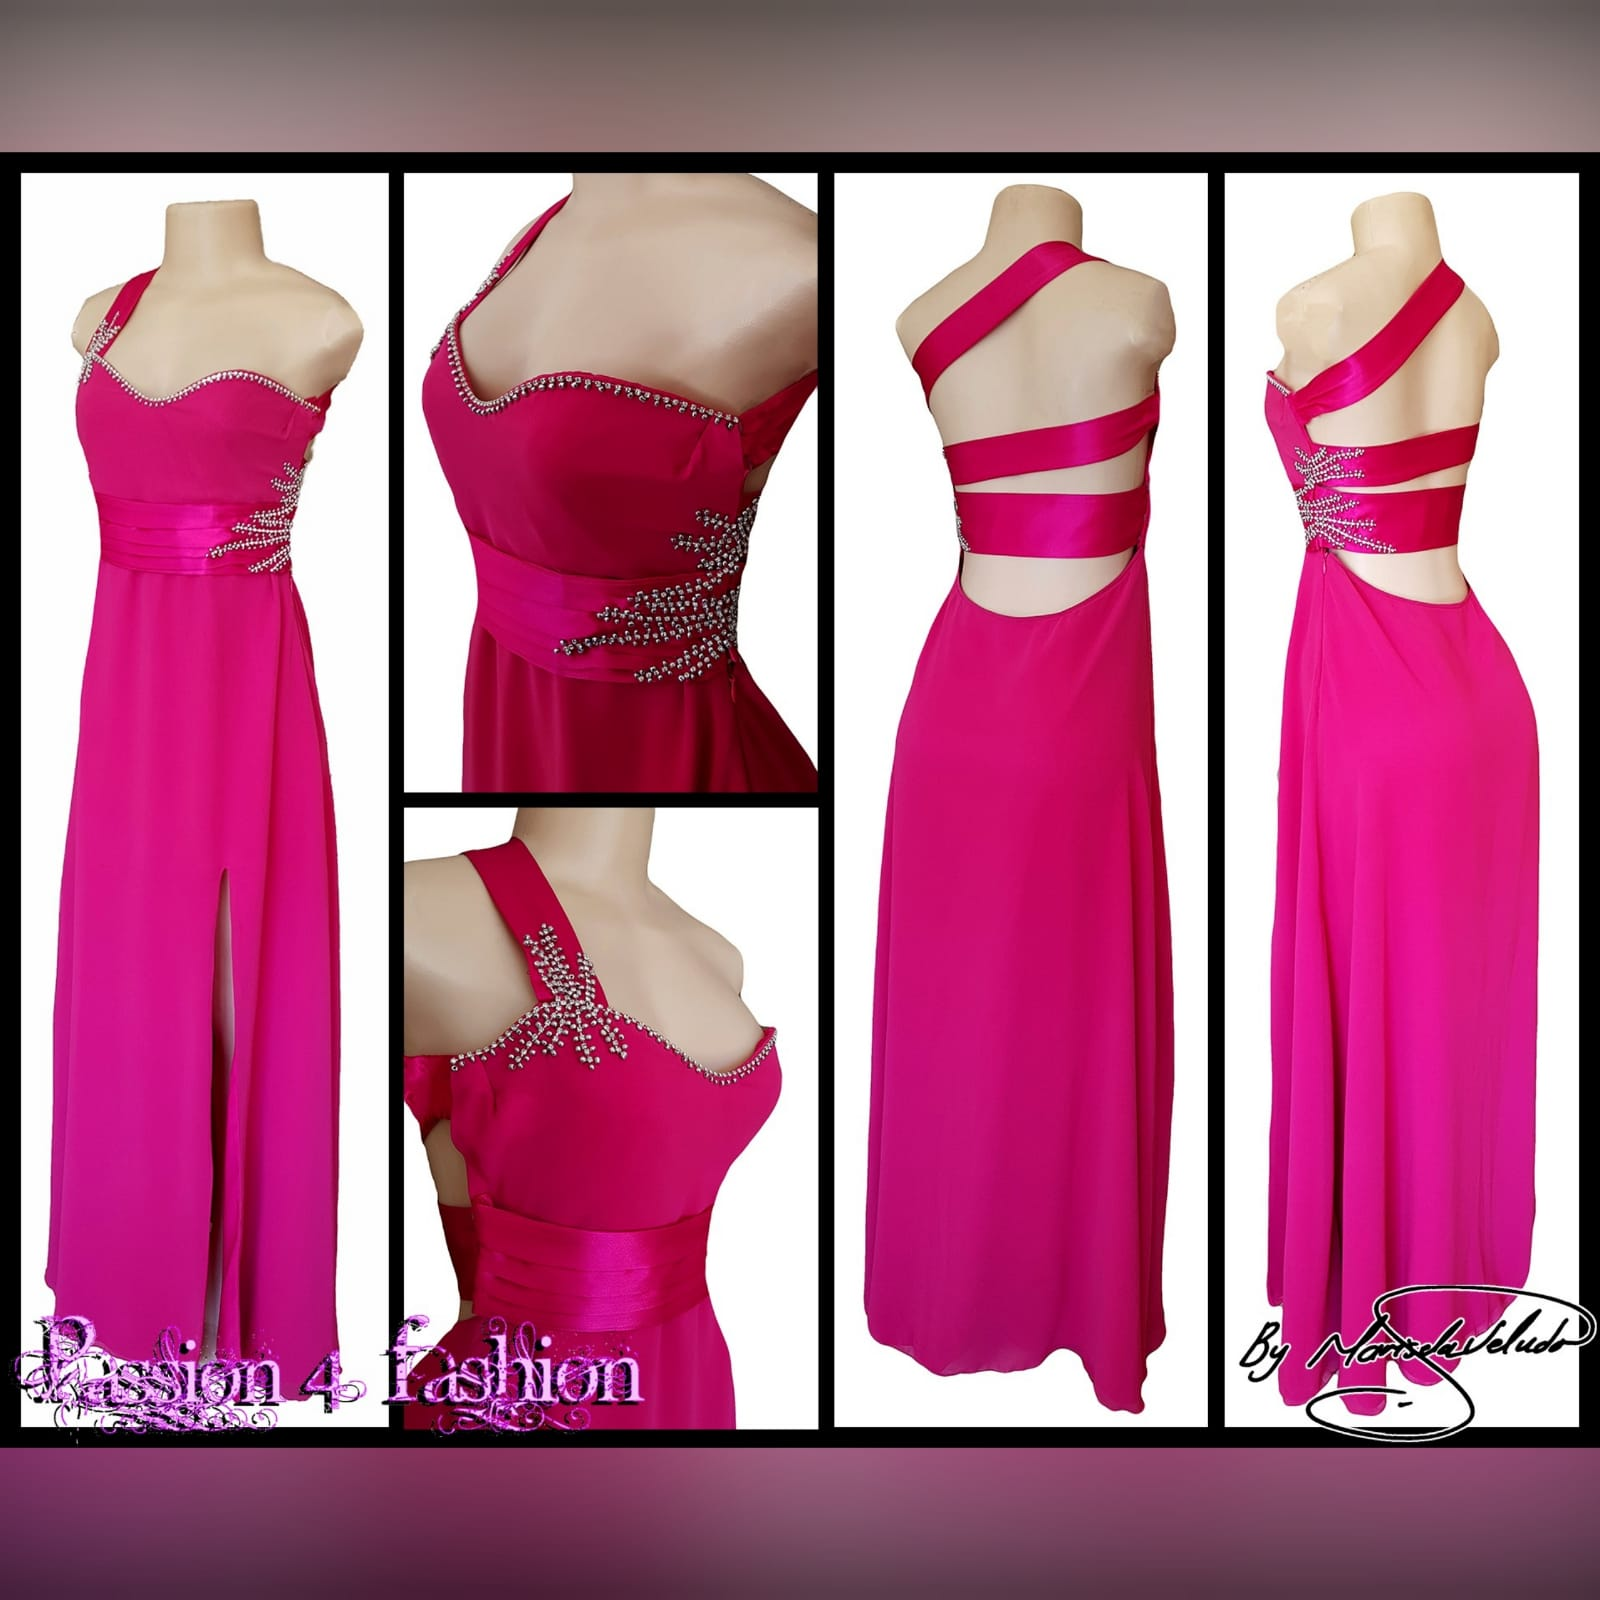 Cerise pink long flowy sexy evening dress 6 cerise pink long flowy sexy evening dress with a slit. One shoulder with a sweetheart neckline. Open back detailed with wide straps. Pleated belt. Dress beaded with silver.